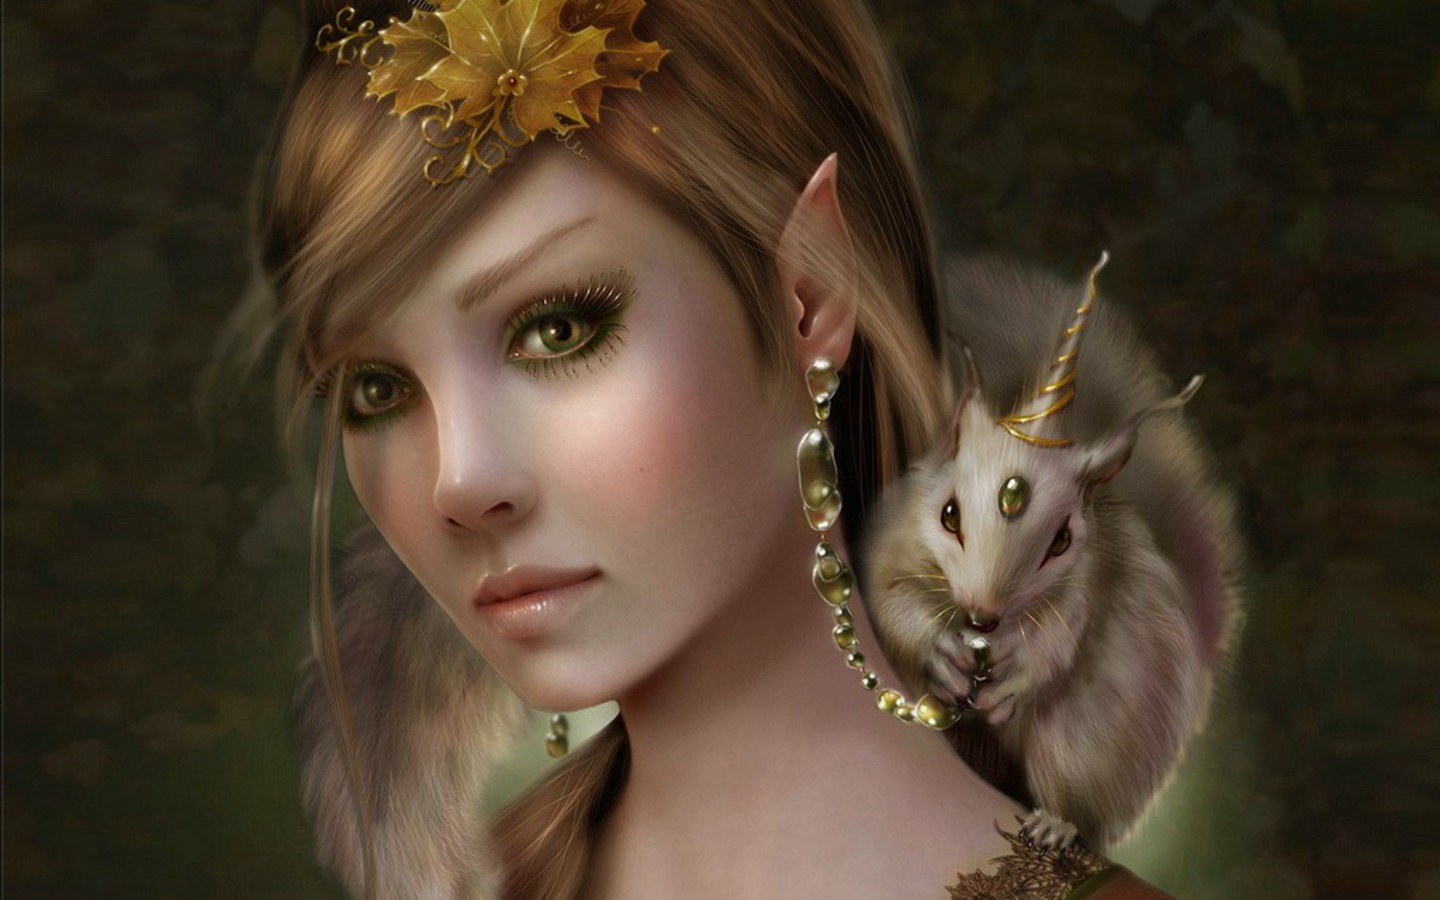 Fantasy Images Women Background Hd 2 Thumb